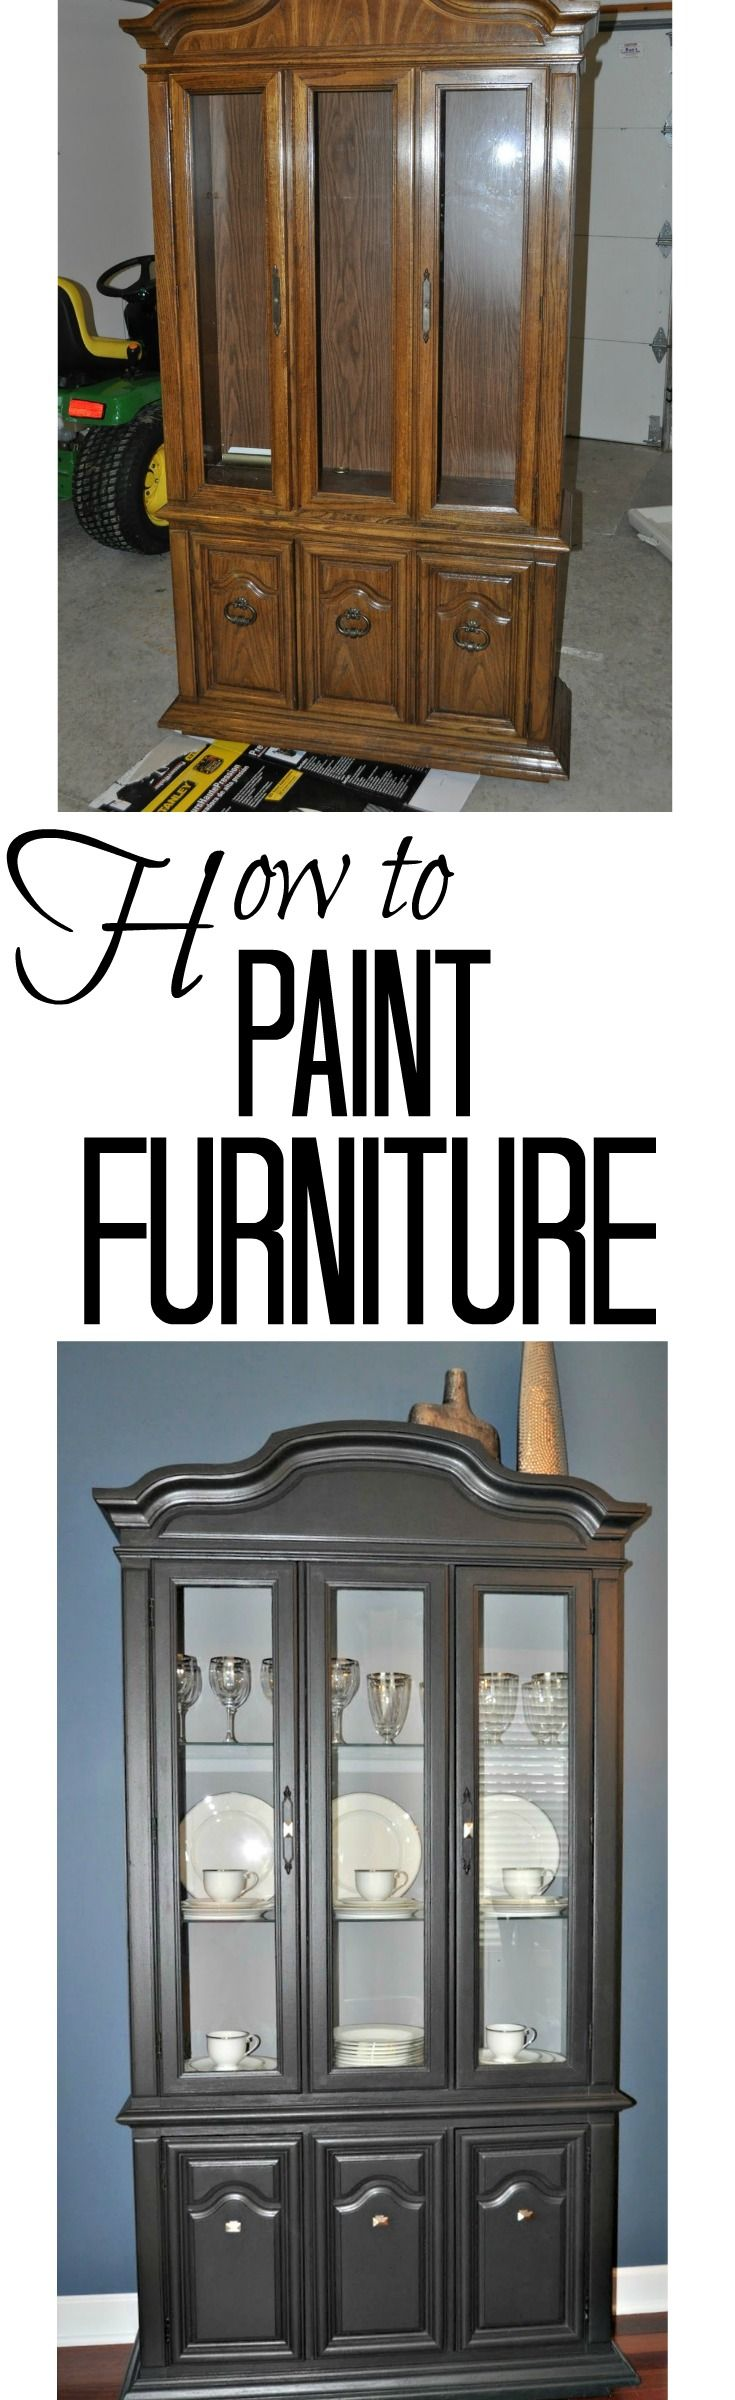 How to Paint Furniture Simple steps to